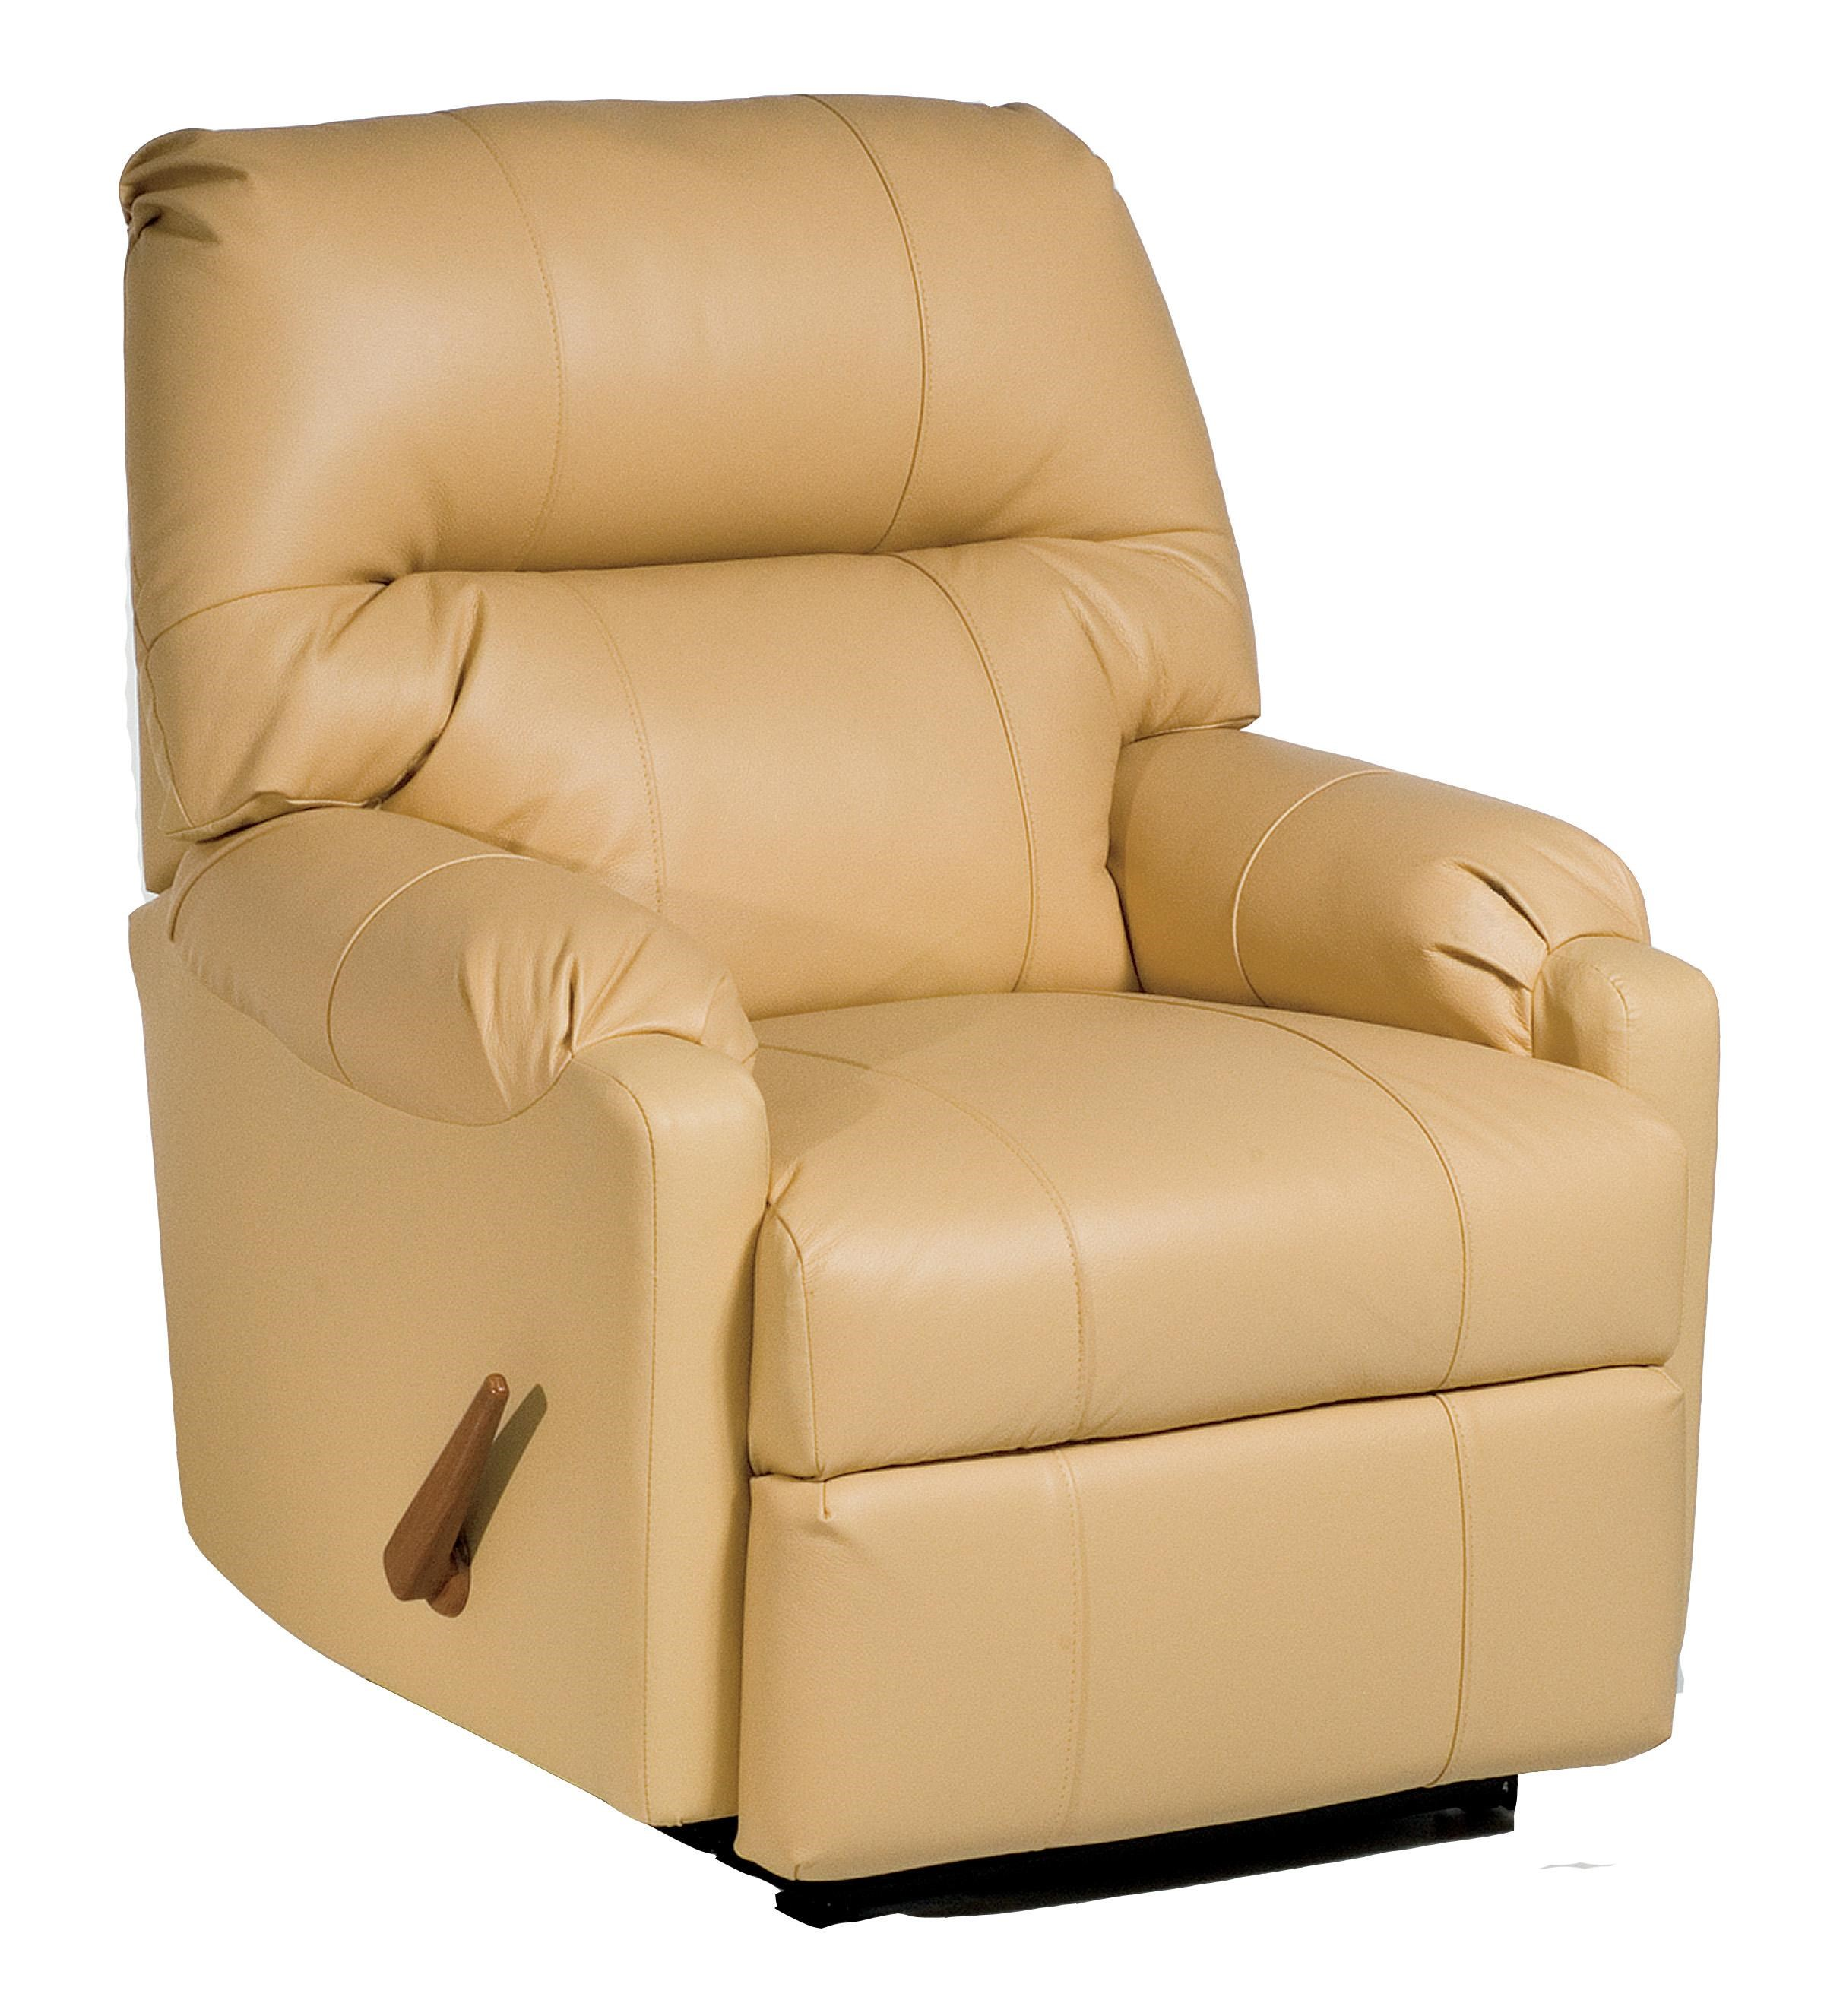 Best Chairs Ferdinand In Best Home Furnishings Recliners For Sale Mysterabbit